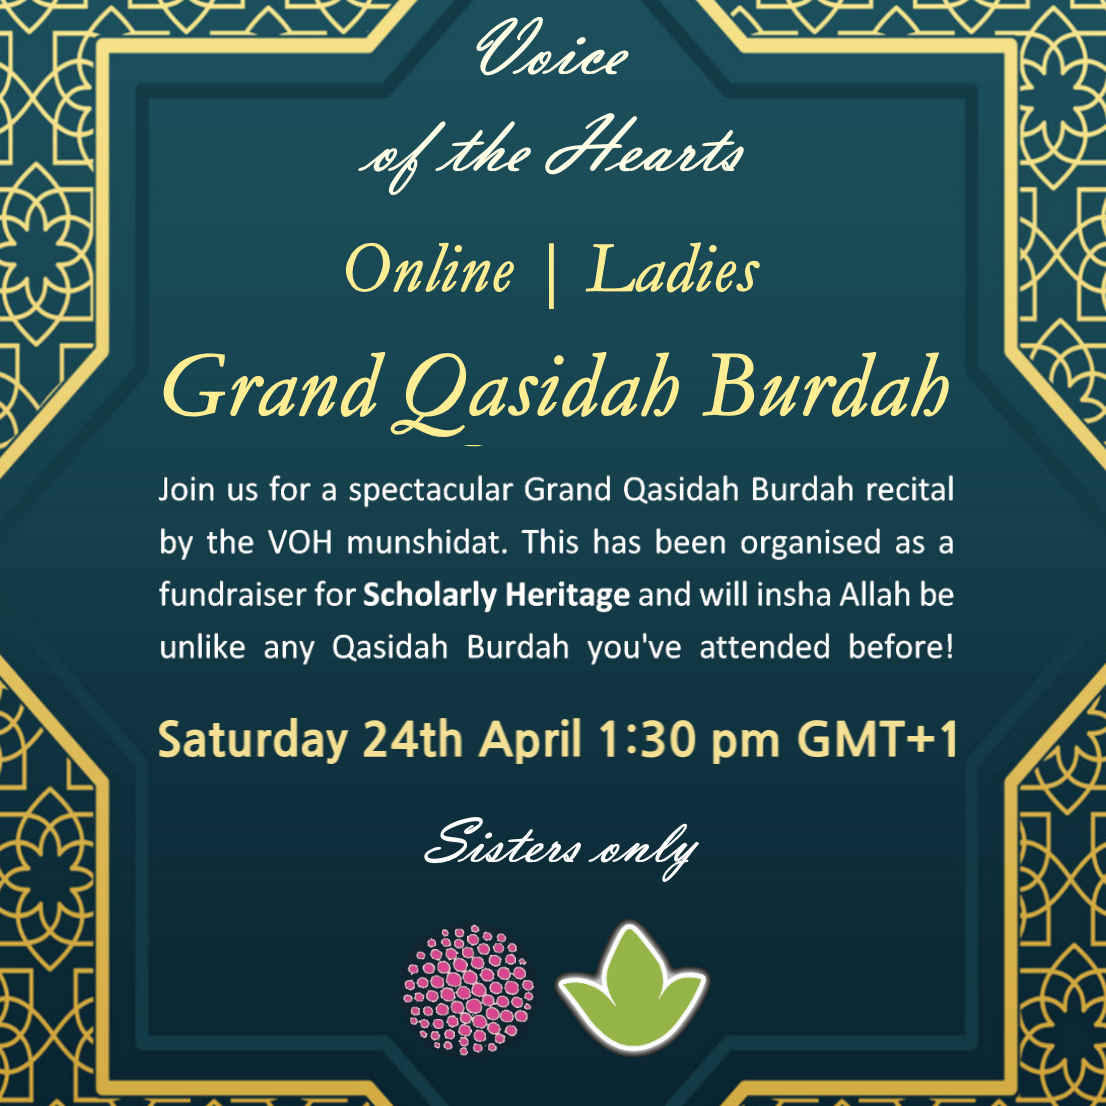 Voice of the Hearts Fundraiser: Grand Qasidah Burdah